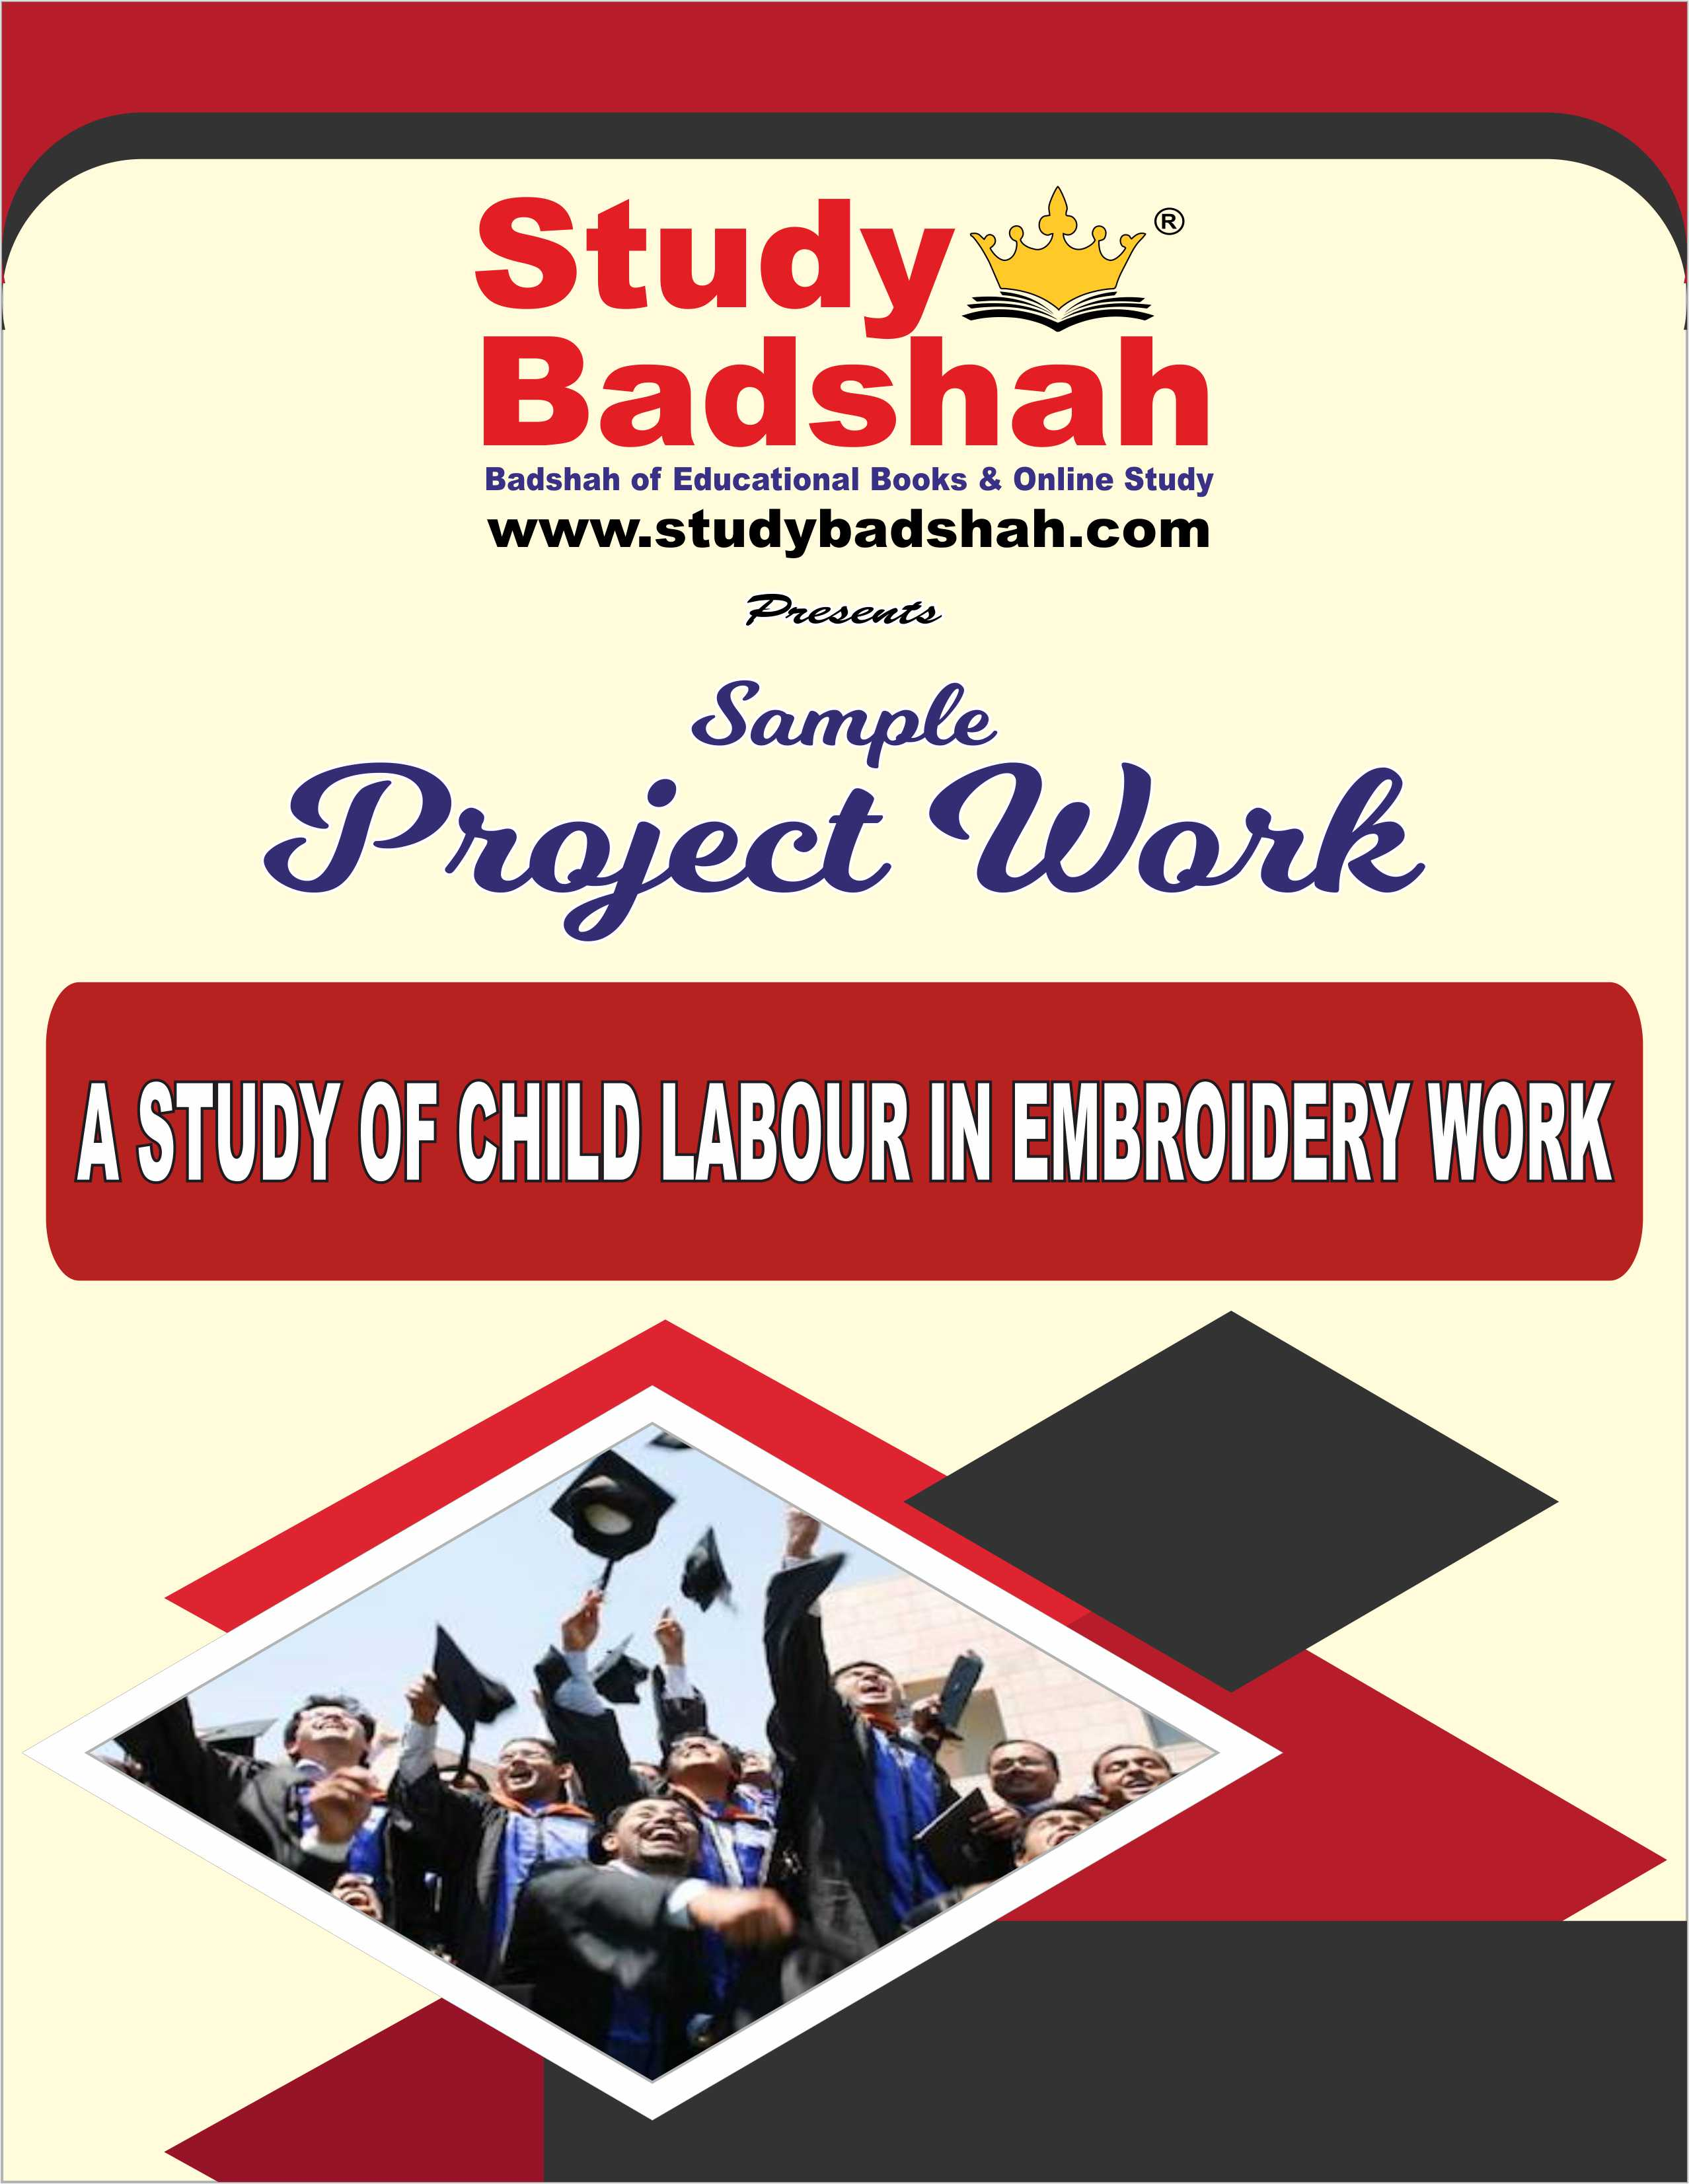 A Study of Child Labour in Embroidery Work